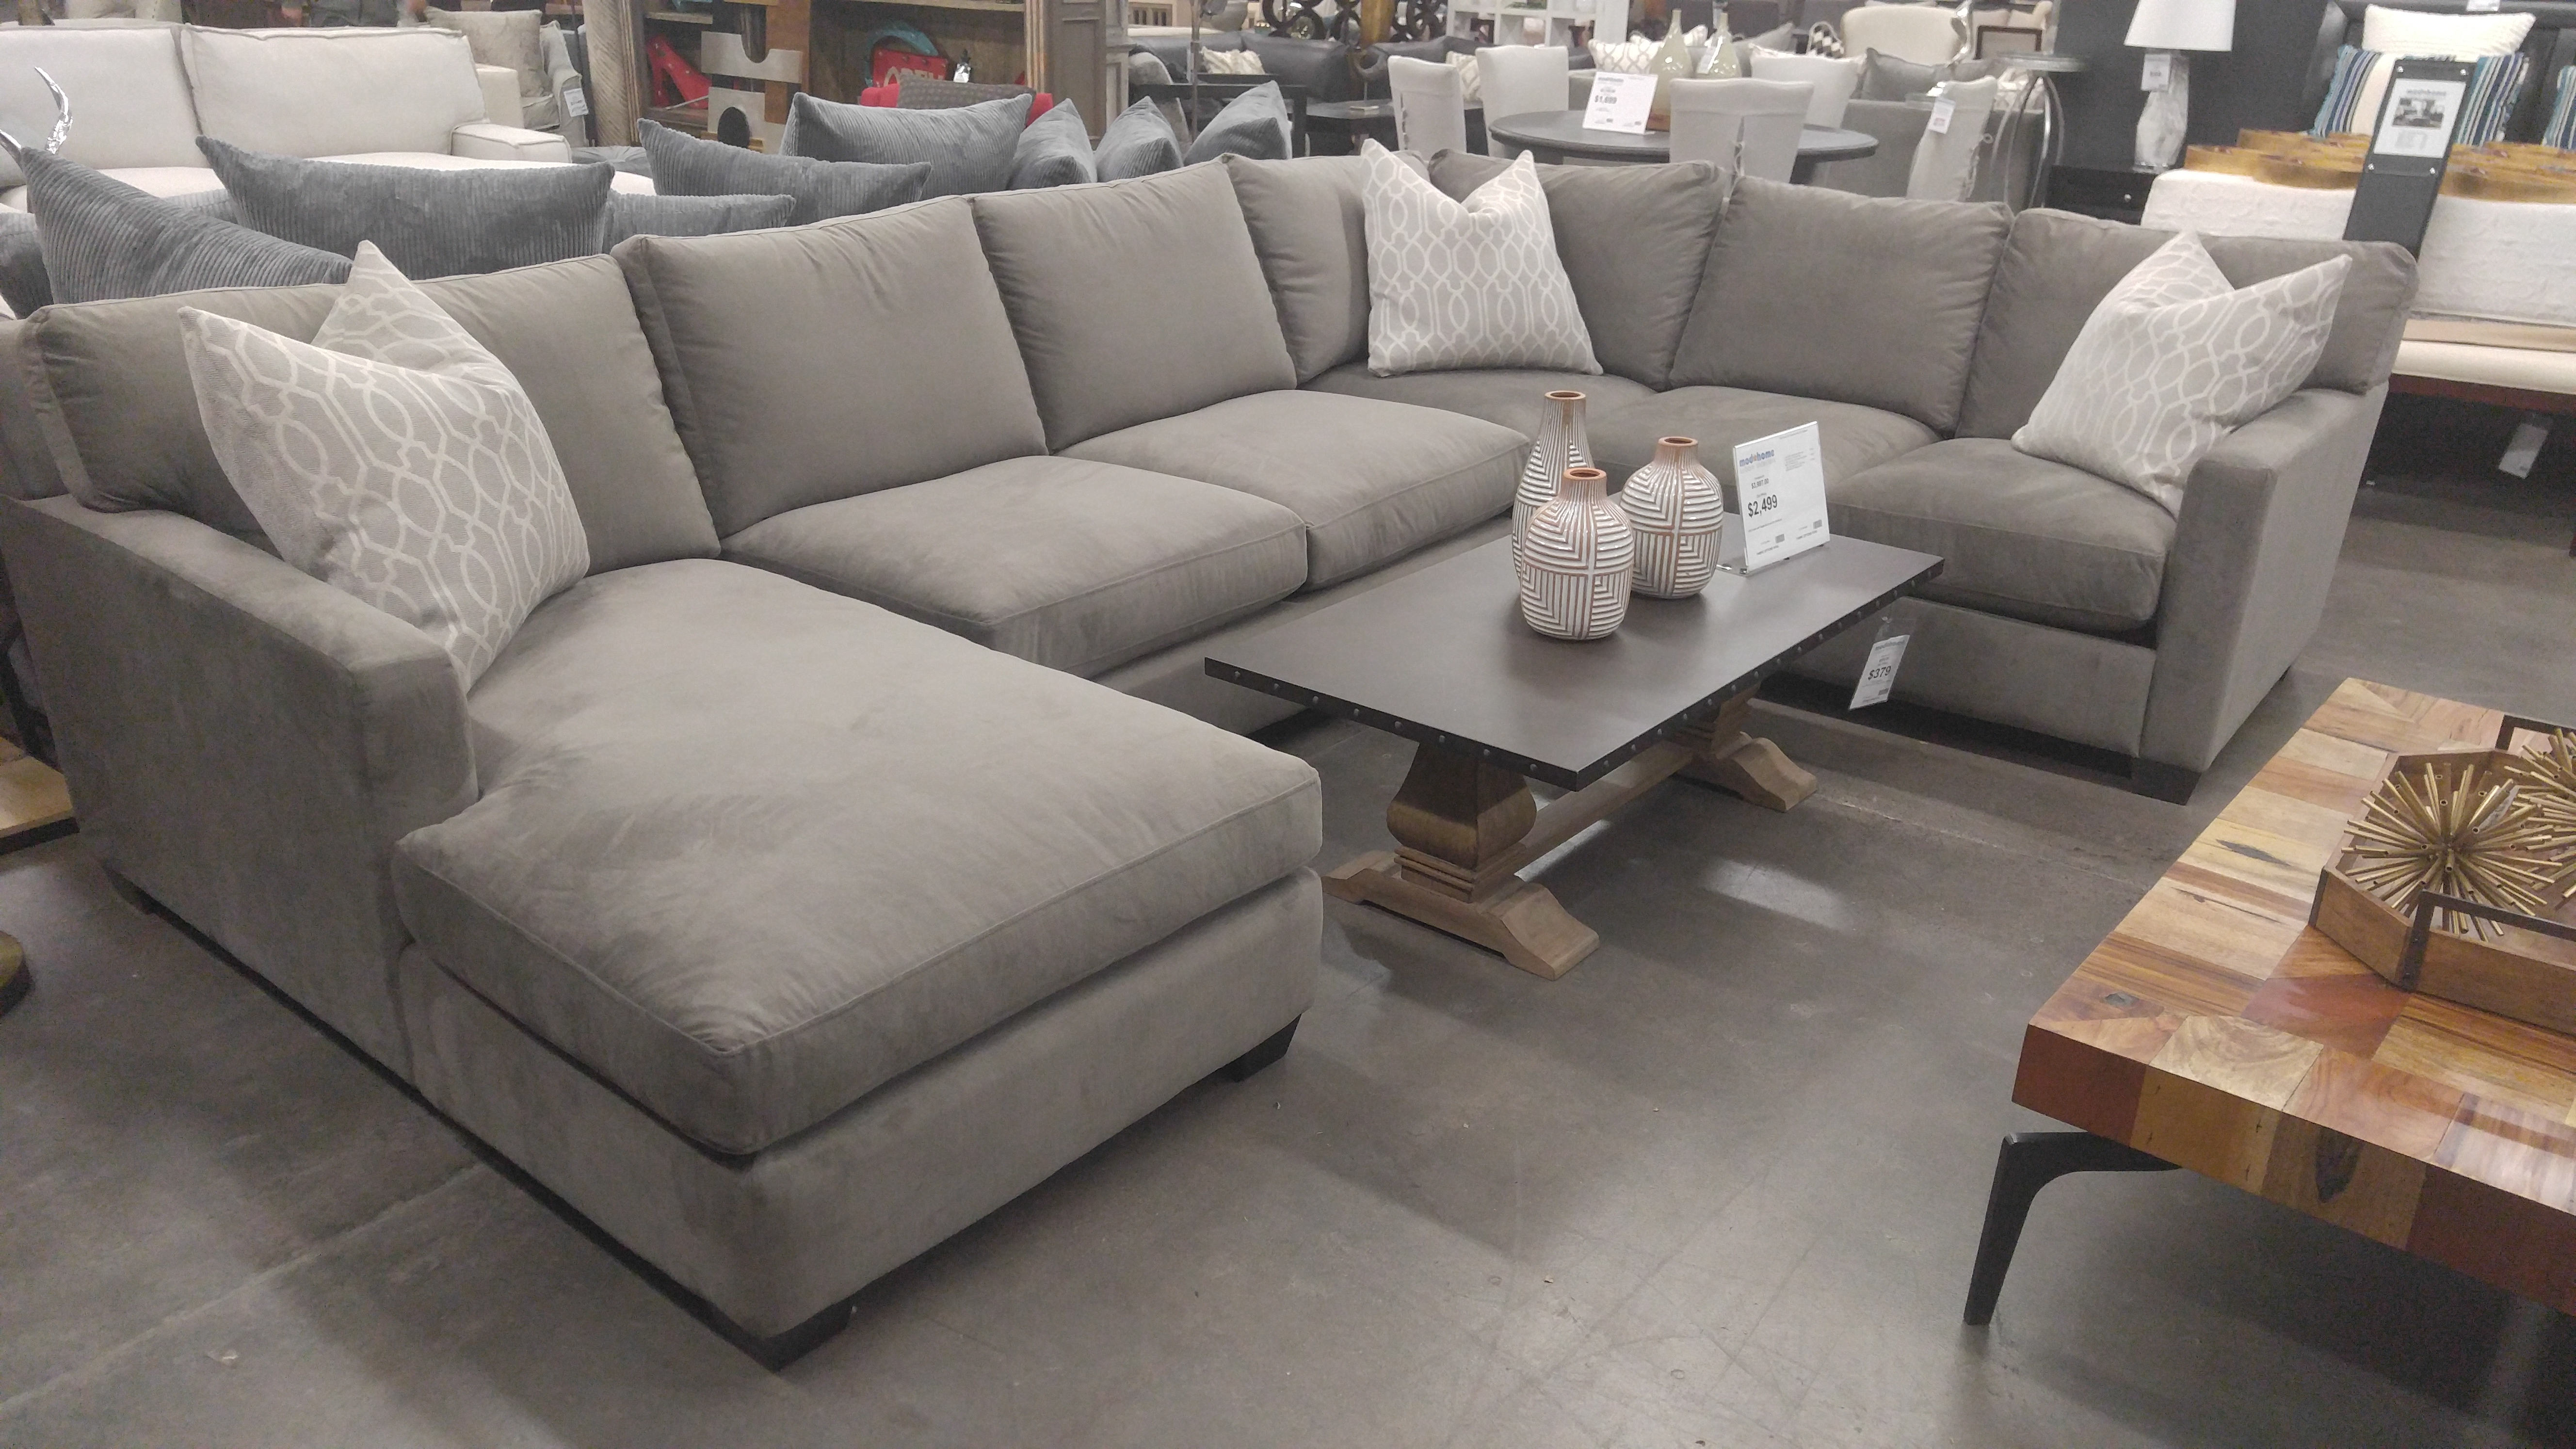 Charmant Furniture,Couches,Sectionals,Sofas   John Michael Designs LLC